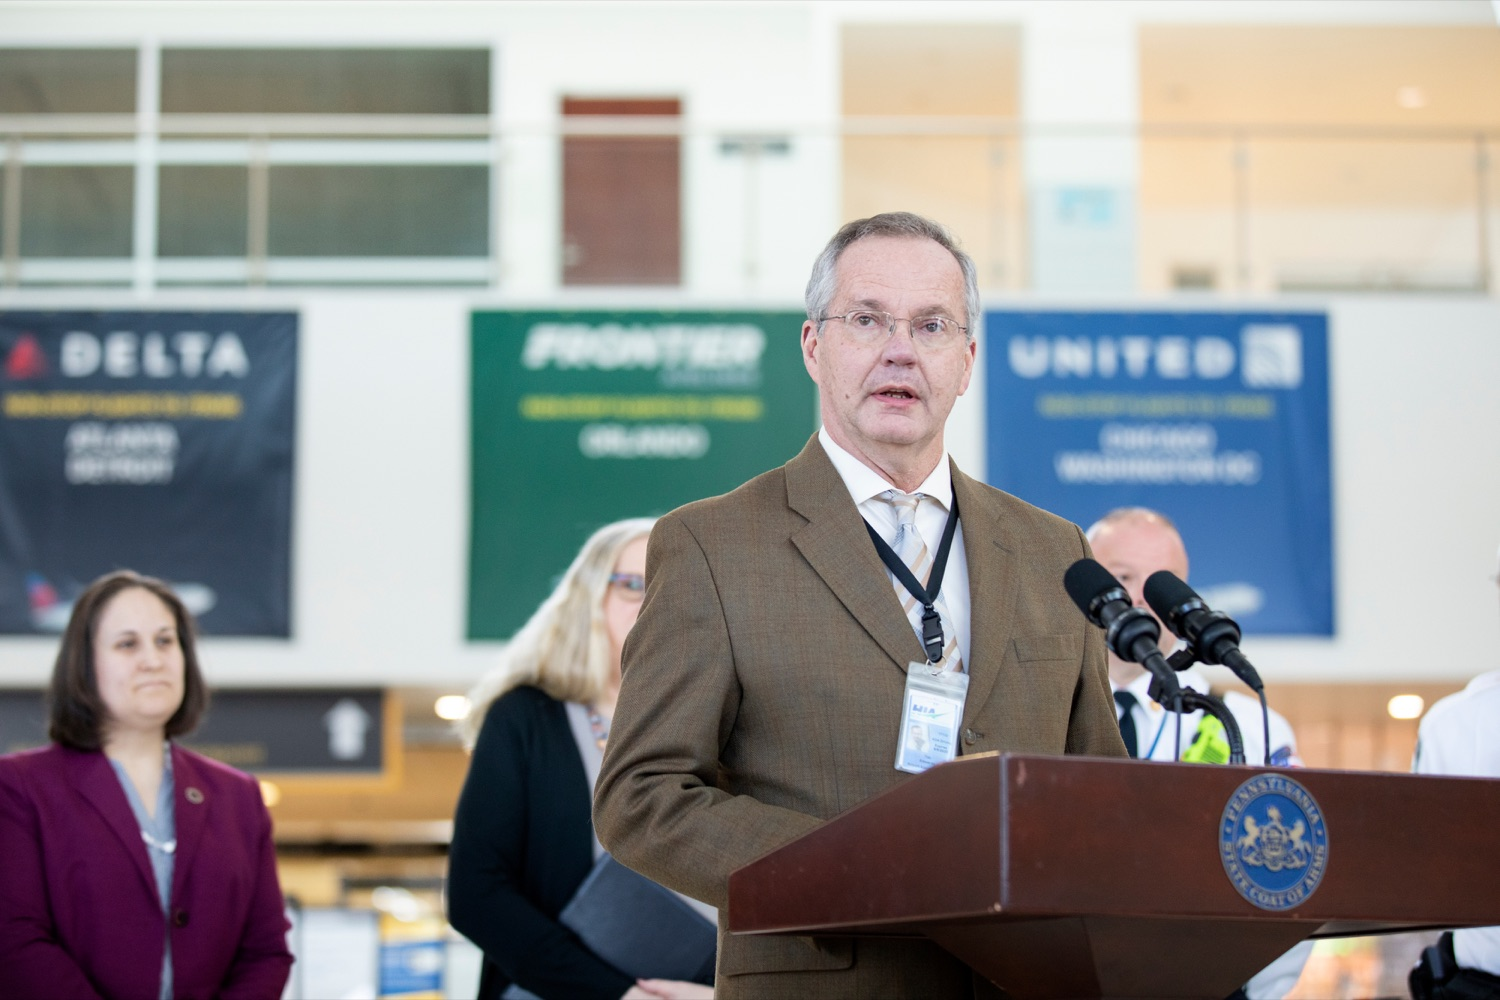 "<a href=""https://filesource.wostreaming.net/commonwealthofpa/photo/17806_DOH_Naloxone_Airports_NK_013.JPG"" target=""_blank"">⇣ Download Photo<br></a>Tim Edwards, executive director of the Susquehanna Area Regional Airport Authority, speaks at a press conference, which announced that the Wolf Administration will be providing free naloxone to Pennsylvania airports as part of an ongoing effort to expand access to the life-saving medication and decrease opioid overdoses across the commonwealth, inside Harrisburg International Airport on Thursday, February 27, 2020."